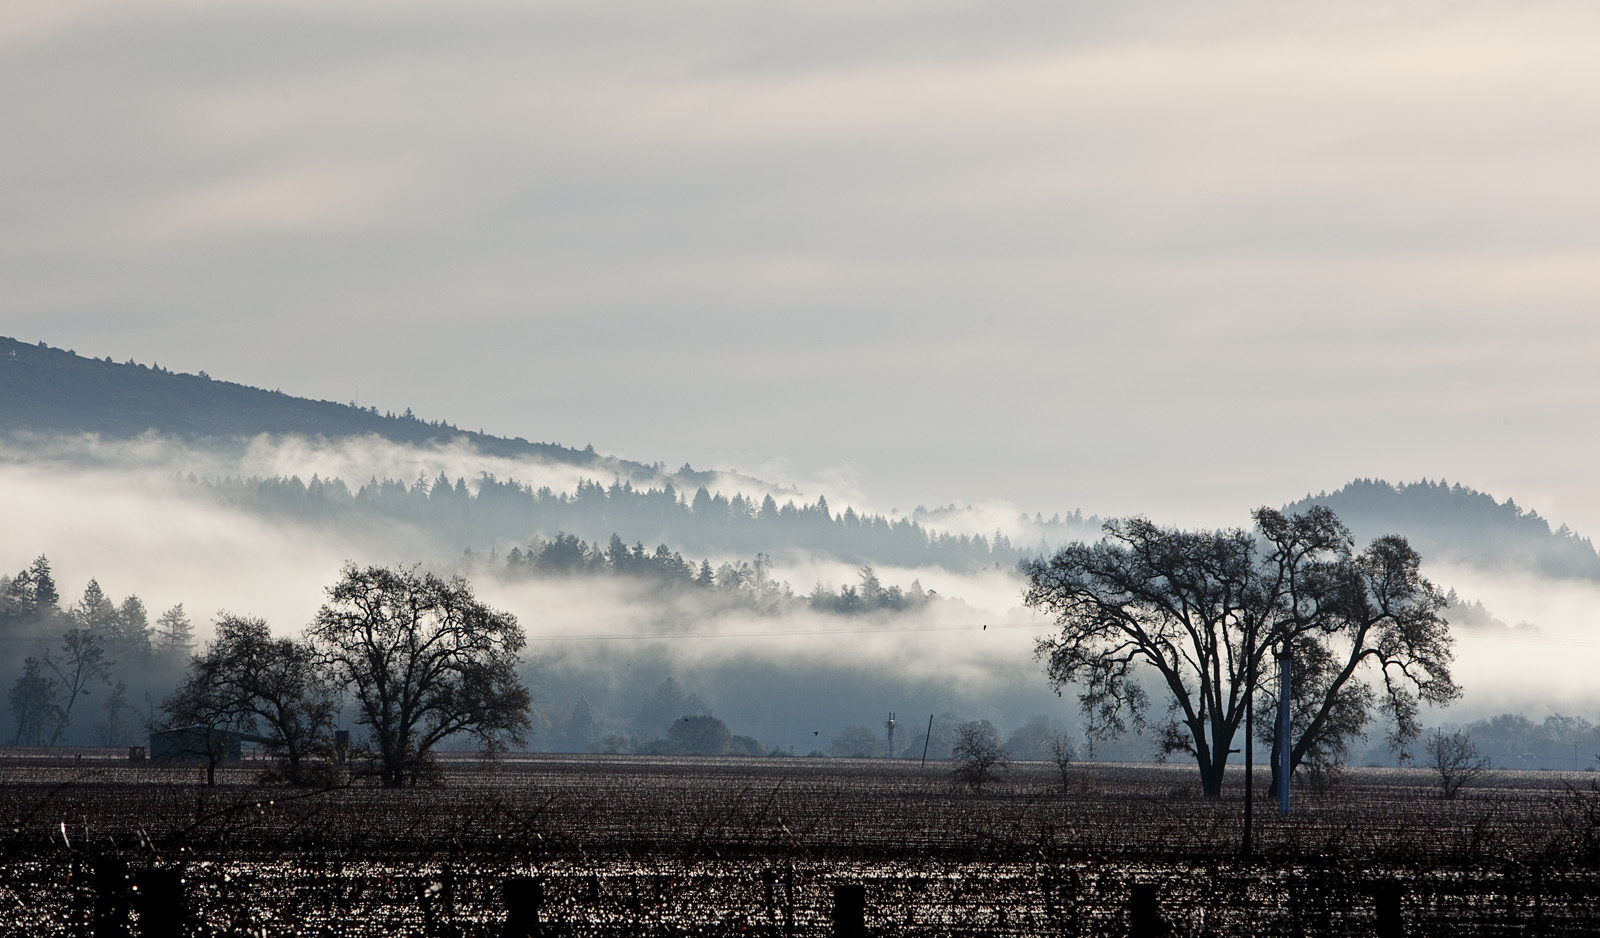 Calistoga Vineyards in Winter, Napa Valley: : Rocco Studio Photography